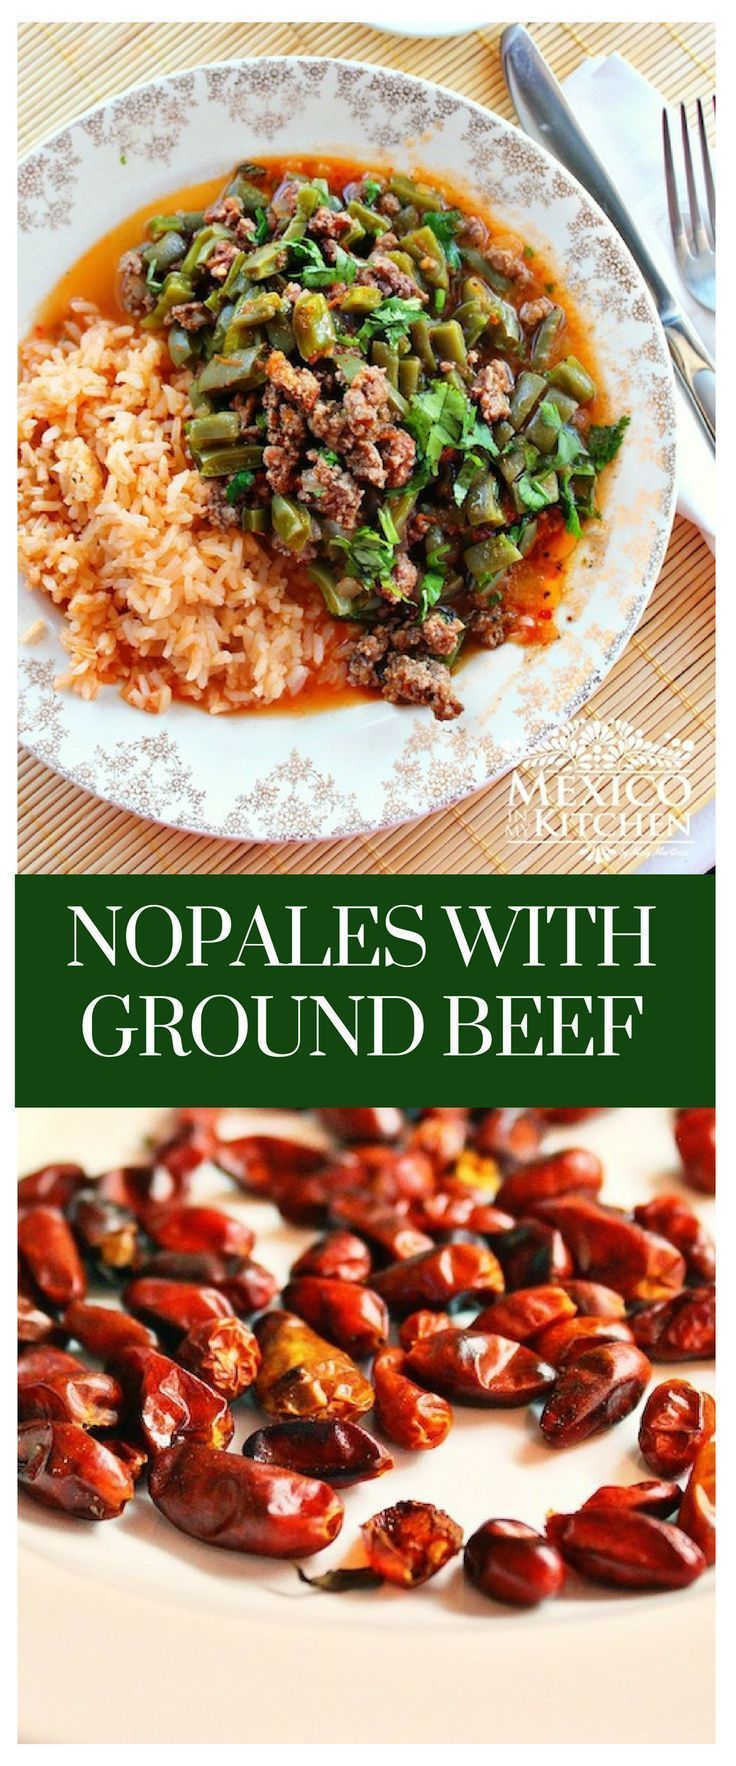 This is a very delicious way to prepare nopales, theaddition of the tomato sauce creates a complete meal when served with rice andcorn tortillas #mexican #nopales #kitchen #recipe